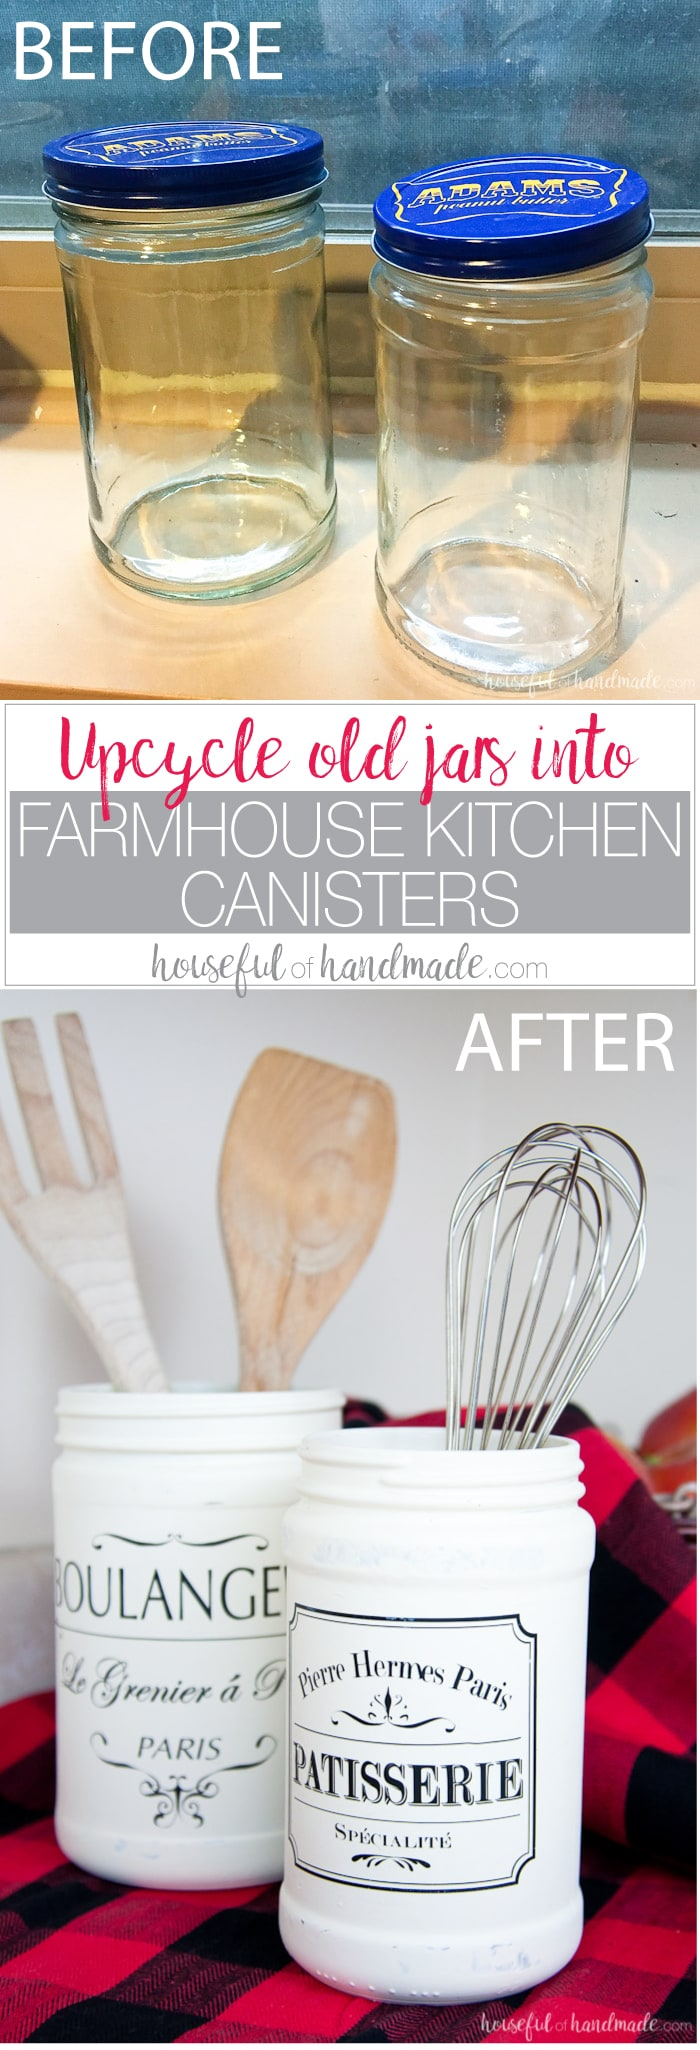 farmhouse kitchen canister diy a houseful of handmade